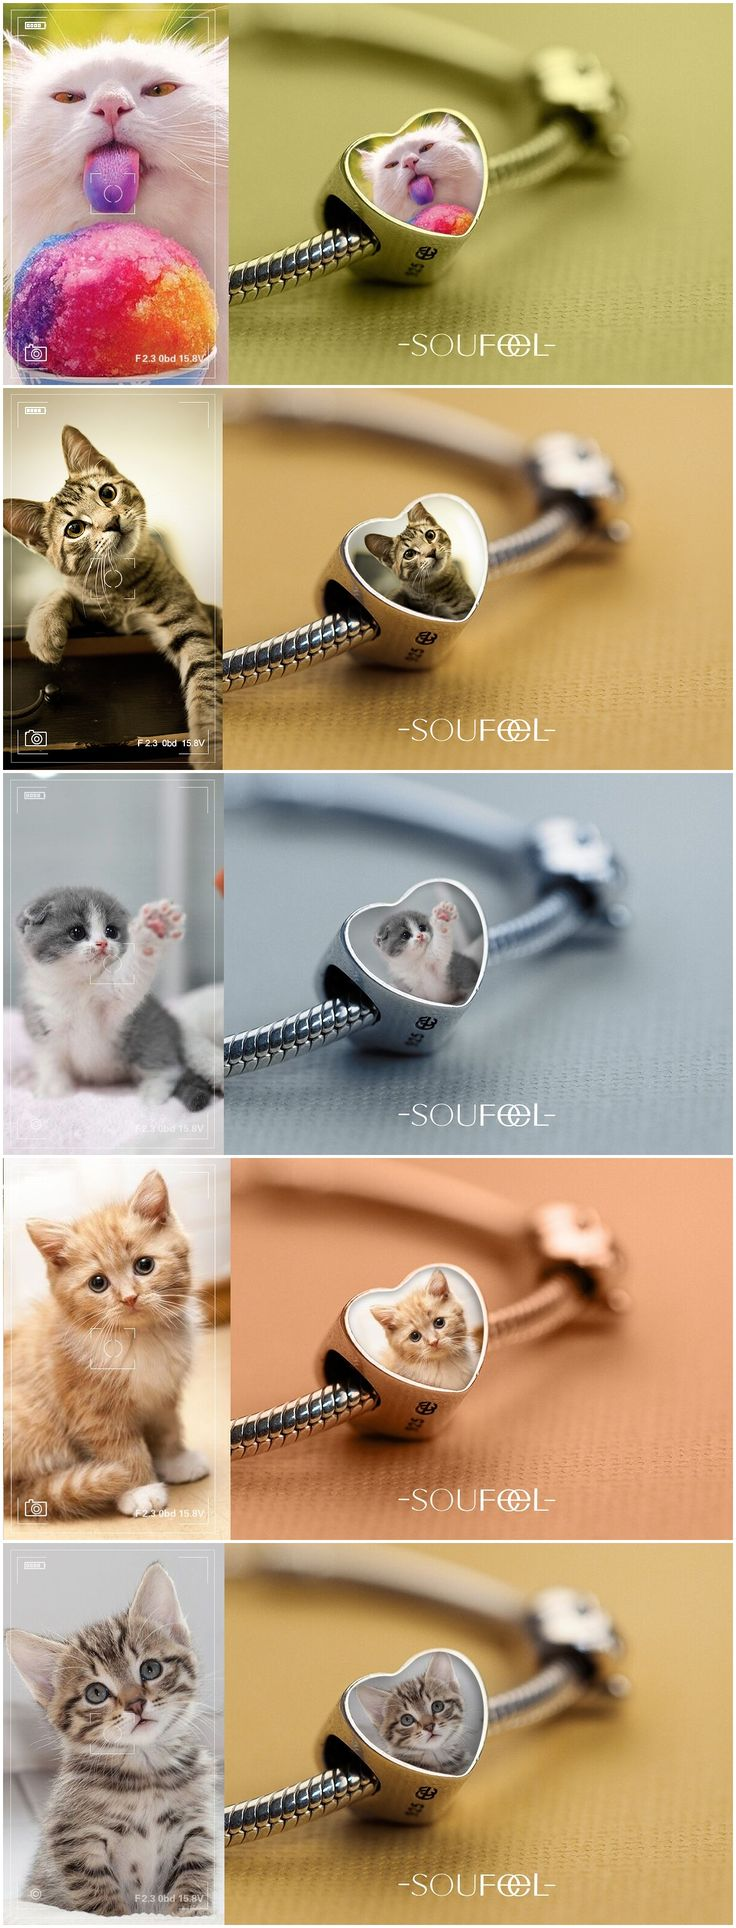 Get a charm bracelet with your kitty's photo in it! Lovely ideas of pet photography!